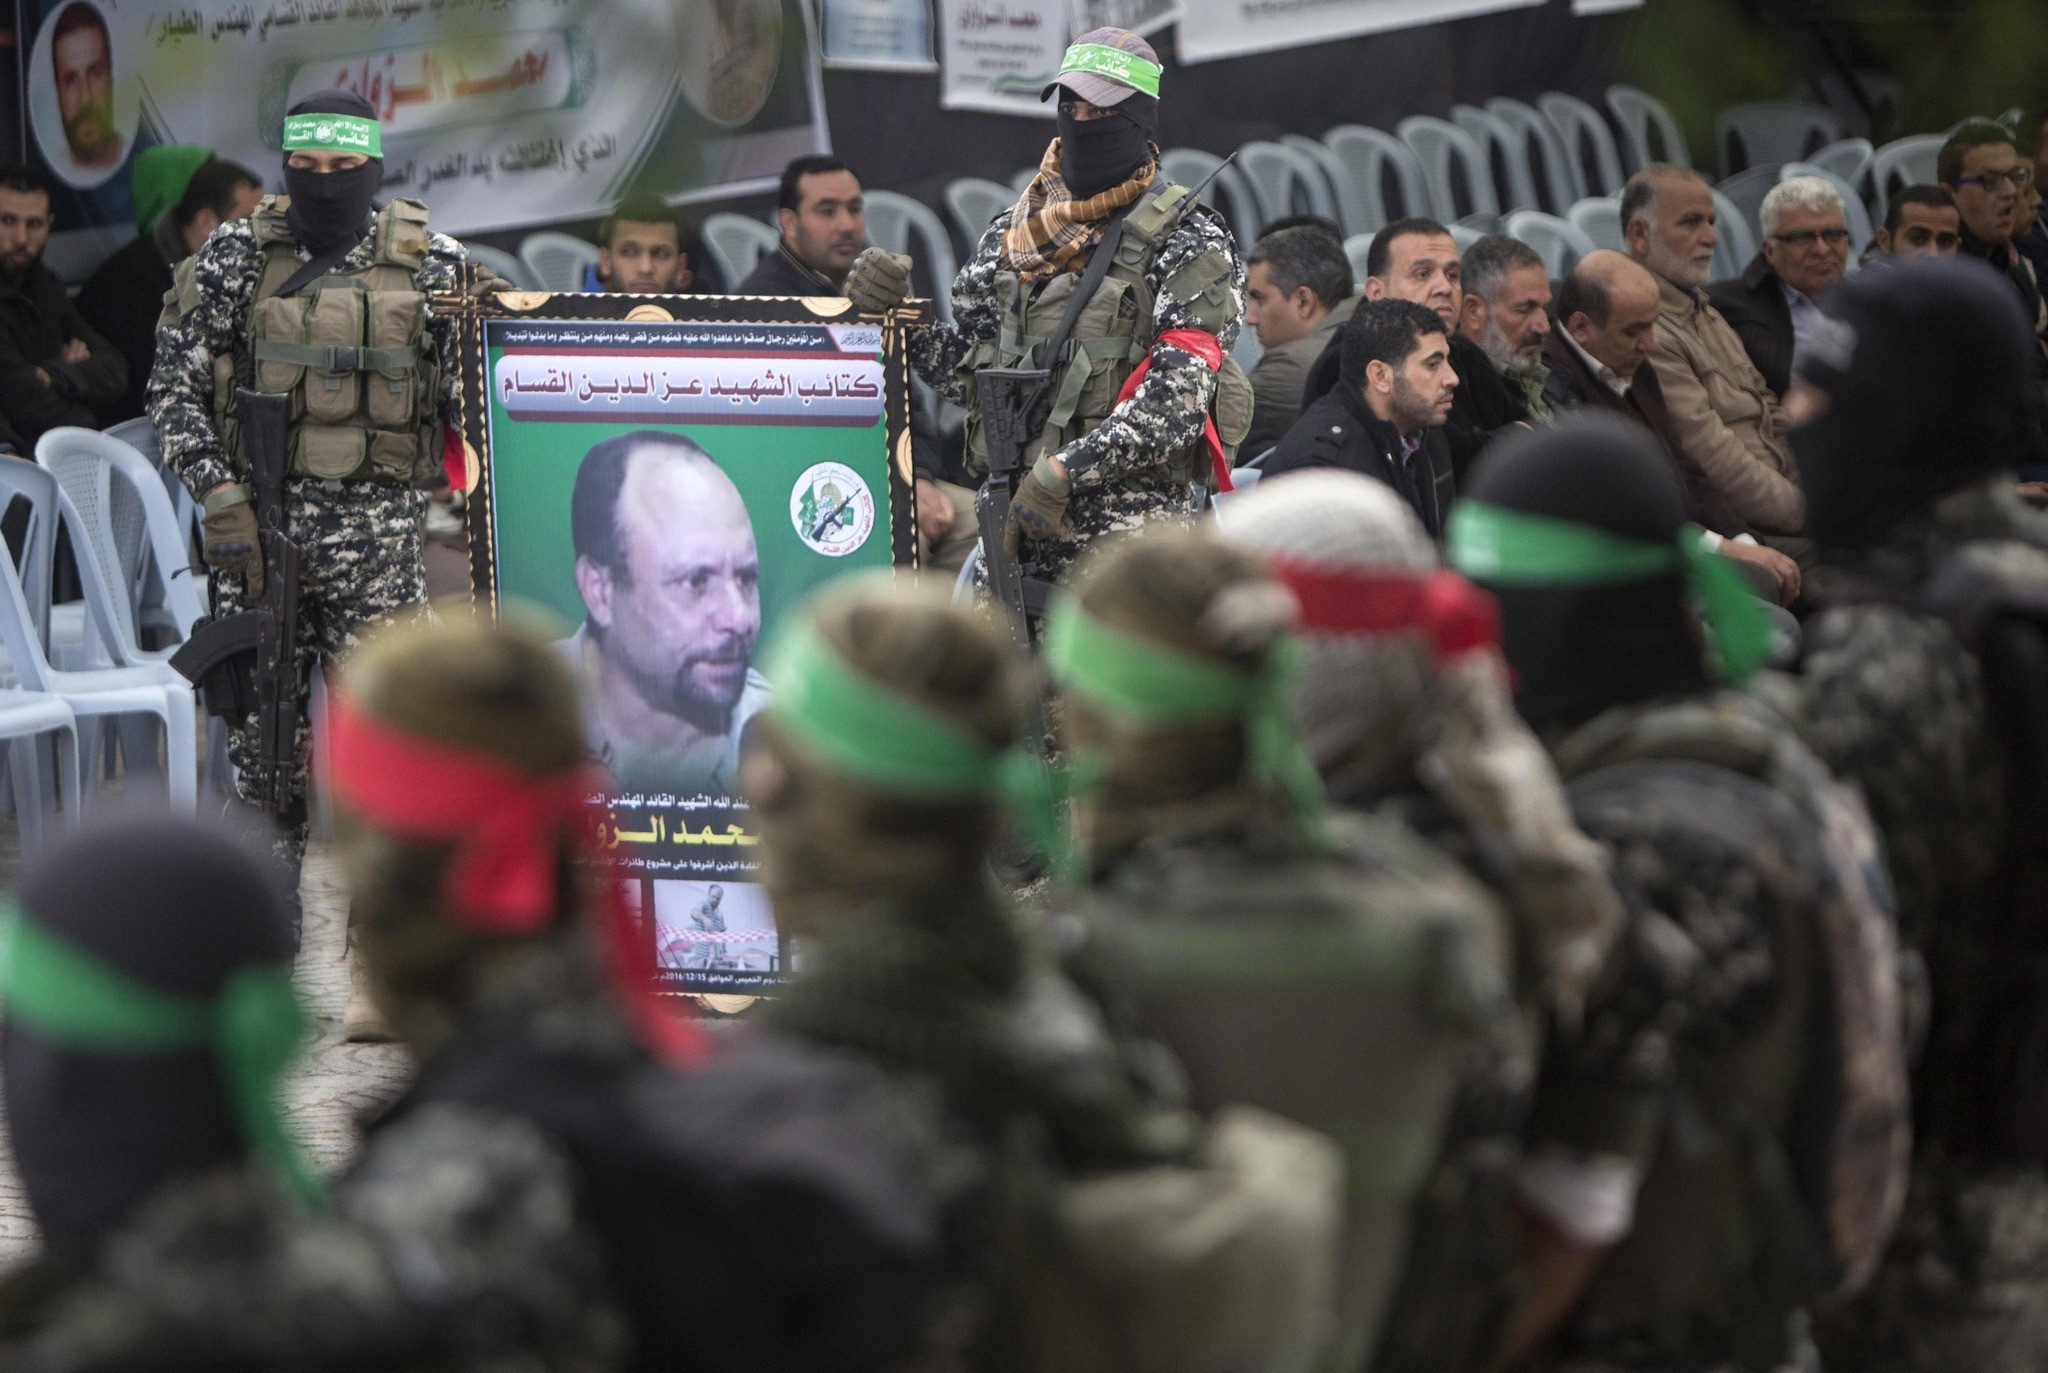 Members of the Ezzedine al-Qassam Brigades hold a banner bearing a portrait of one of their leaders, Mohamed Zaouari. (AFP Photo)